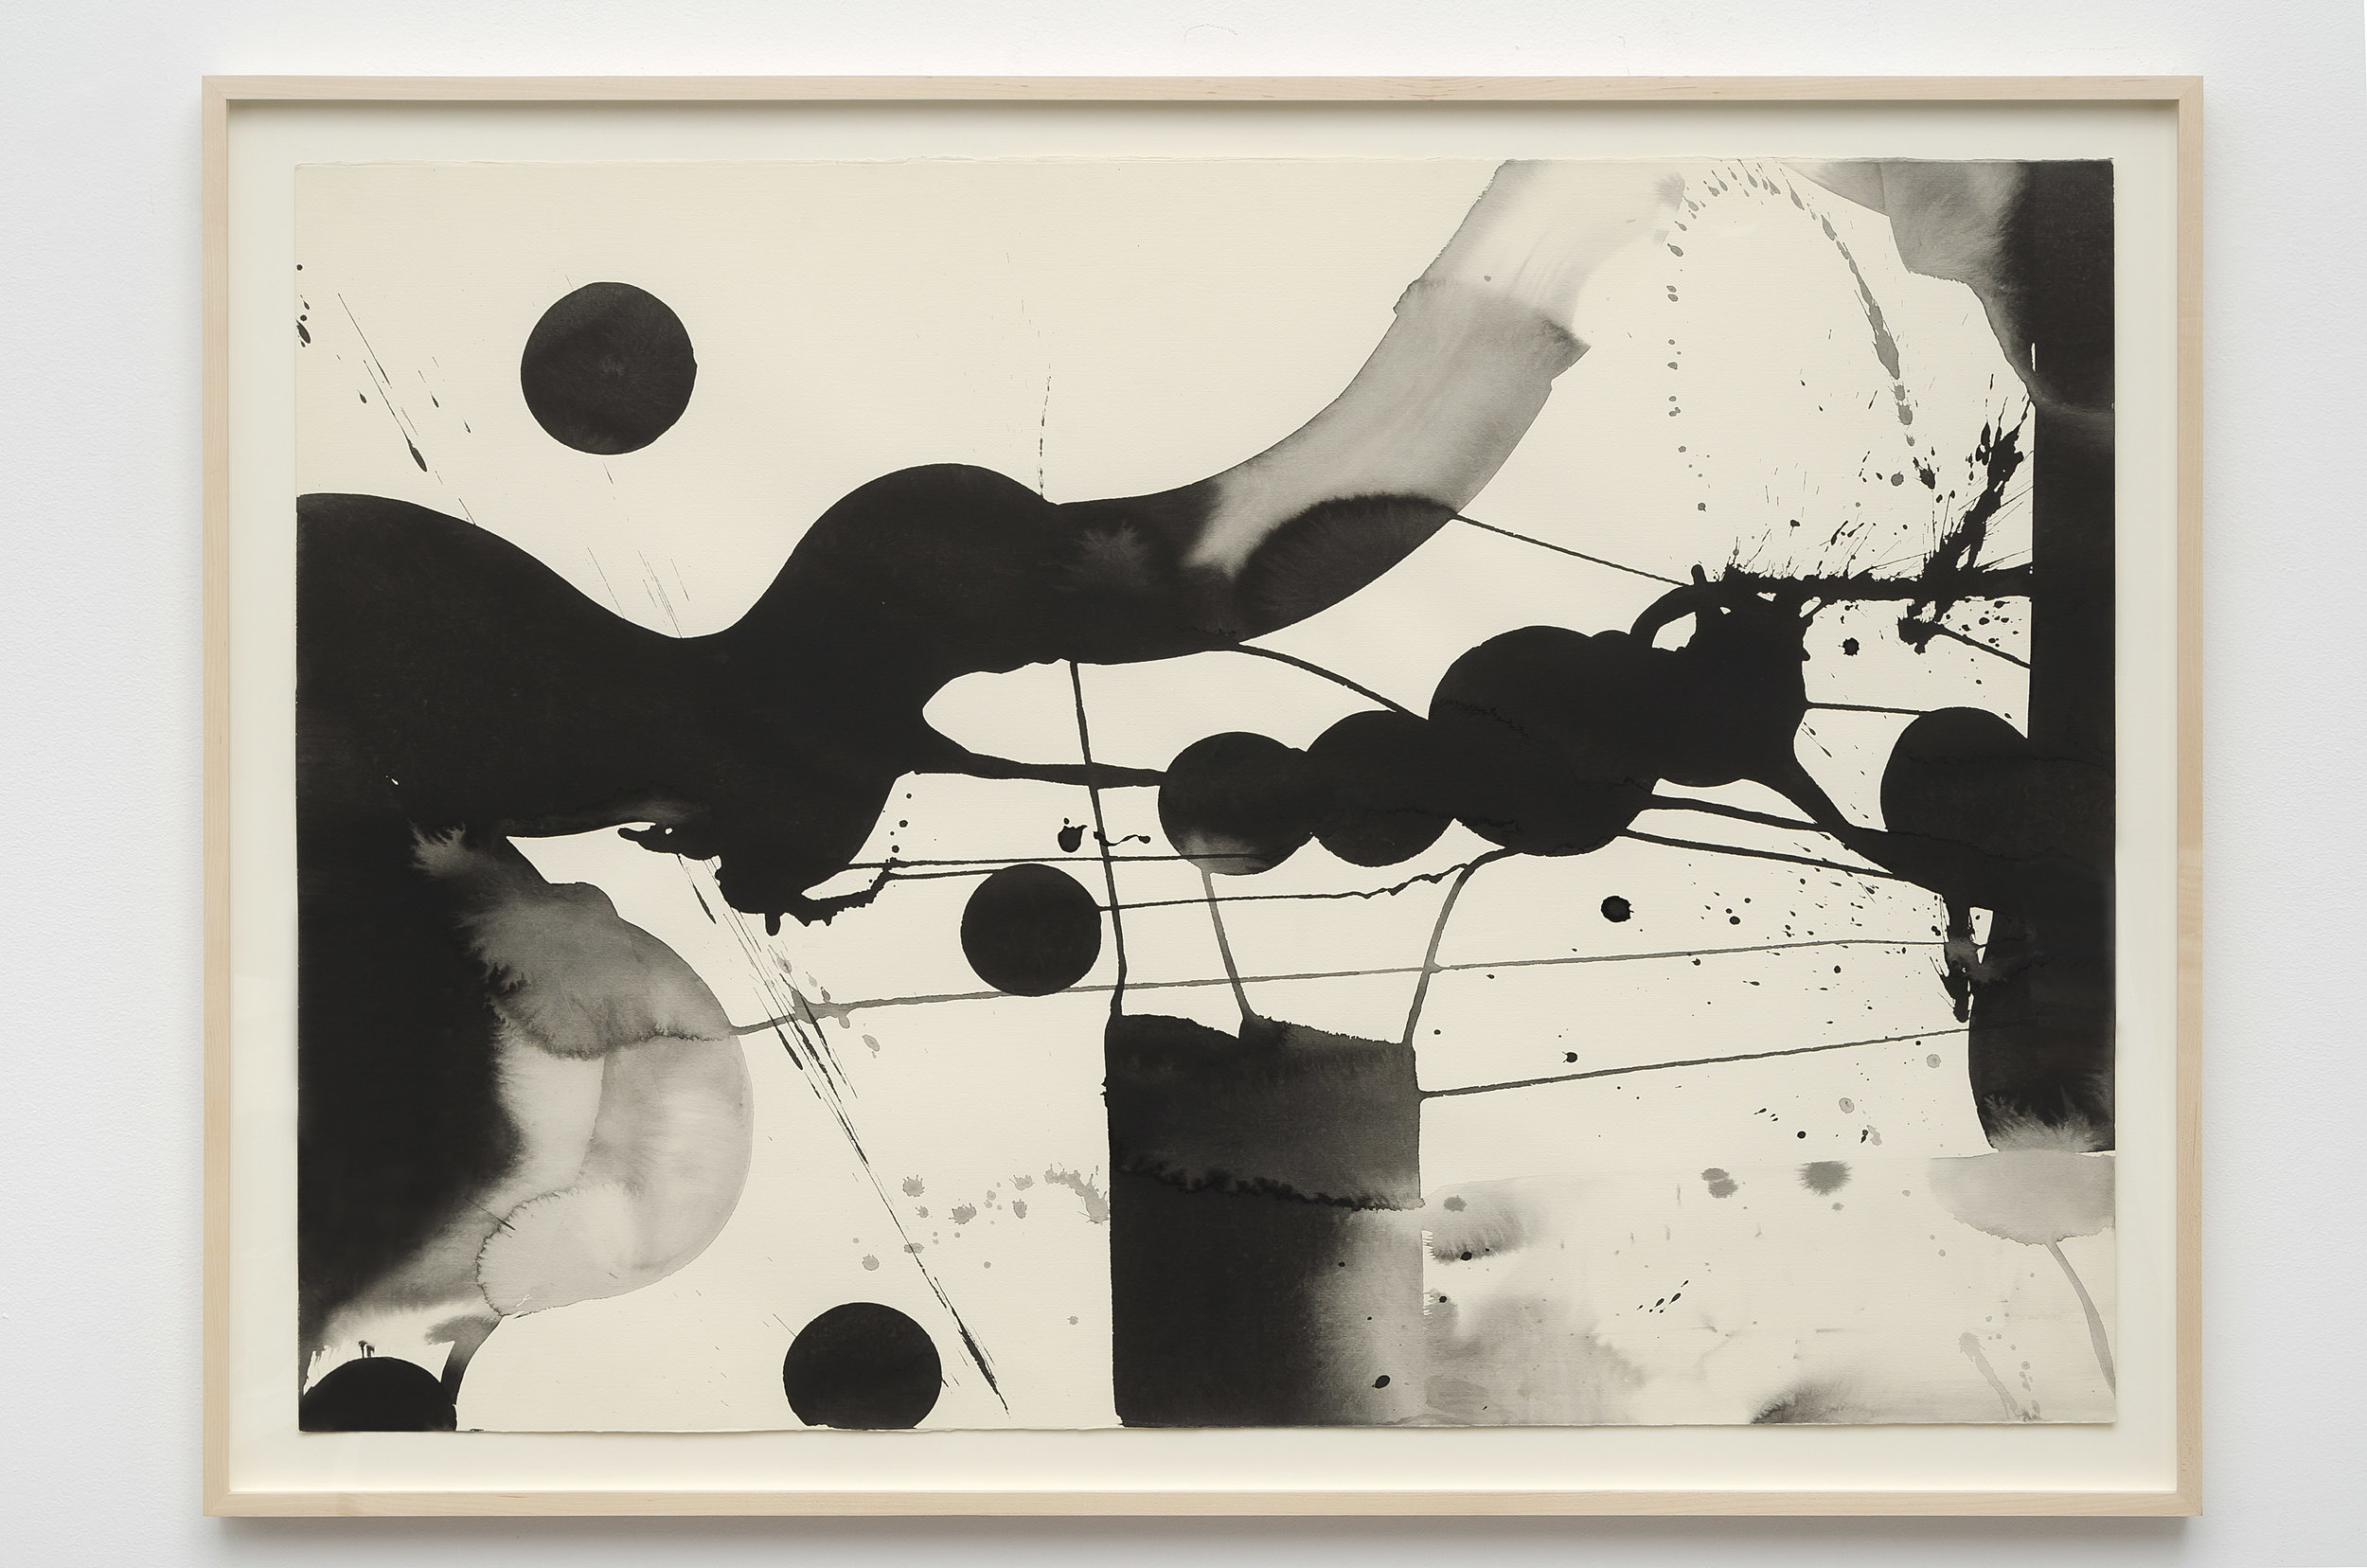 Matsumi Kanemitsu (1922-1992)   Untitled , c. 1970s sumi ink on paper 31 1/4 x 43 1/4 inches; 79.4 x 109.9 centimeters